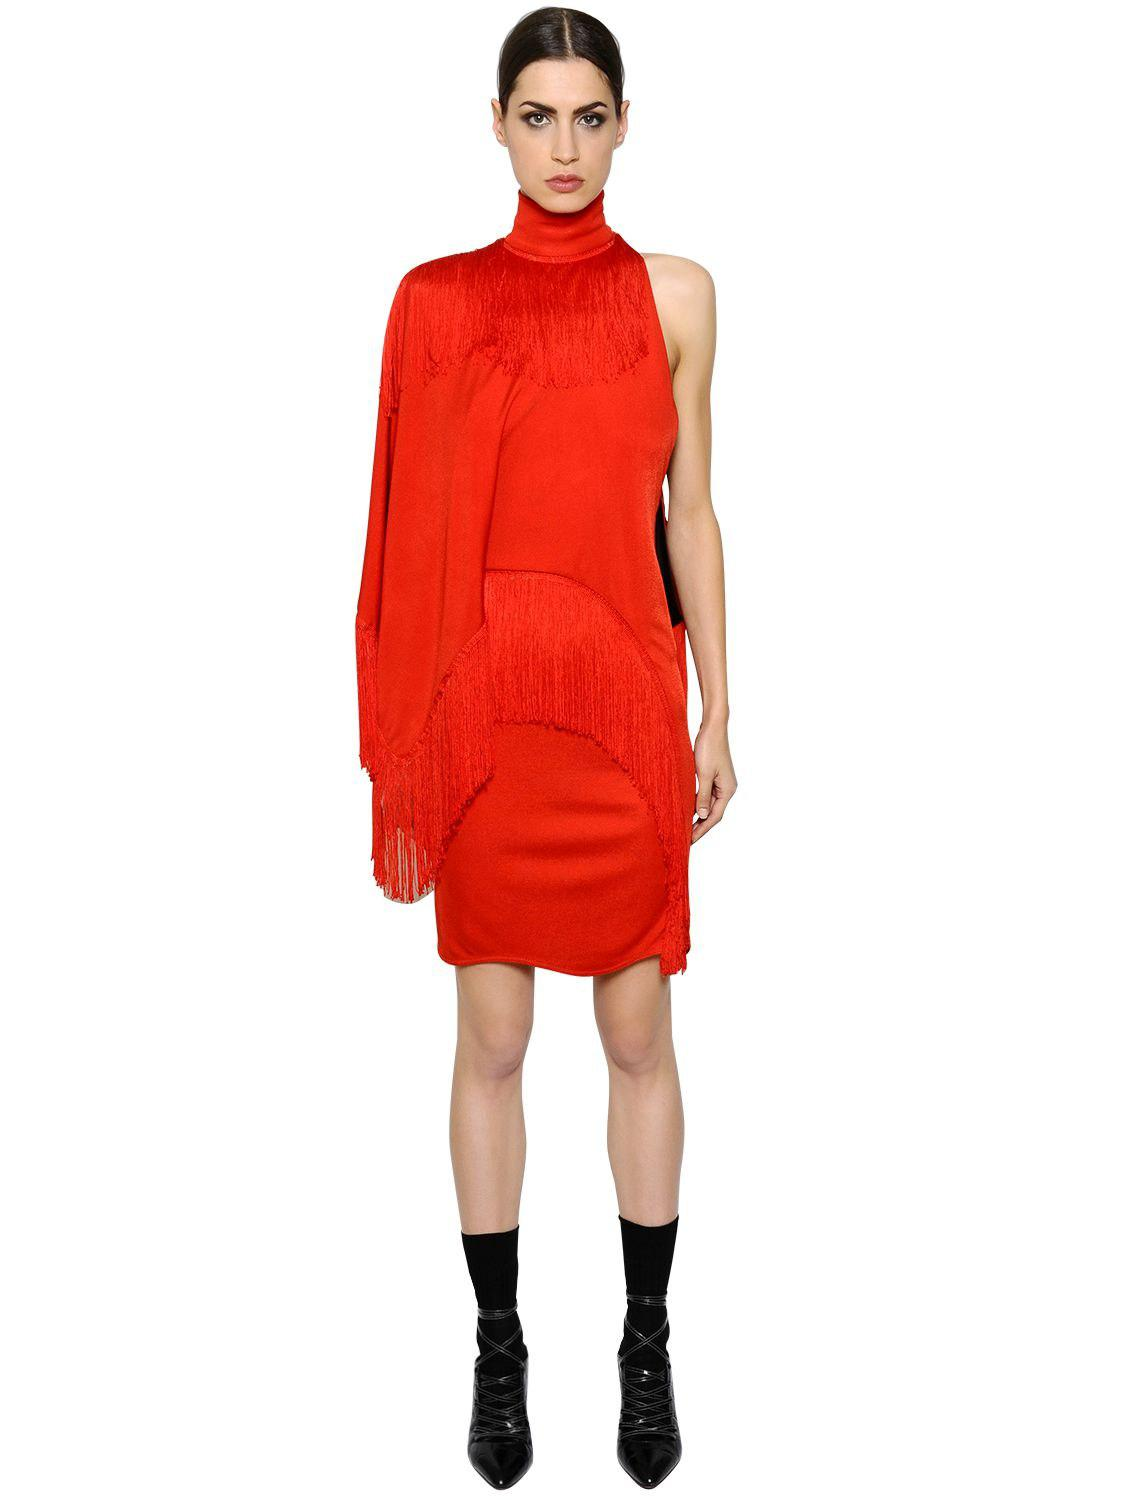 Givenchy Woman One-shoulder Fringed Jersey Turtleneck Mini Dress Red Size 36 Givenchy joIFvuV